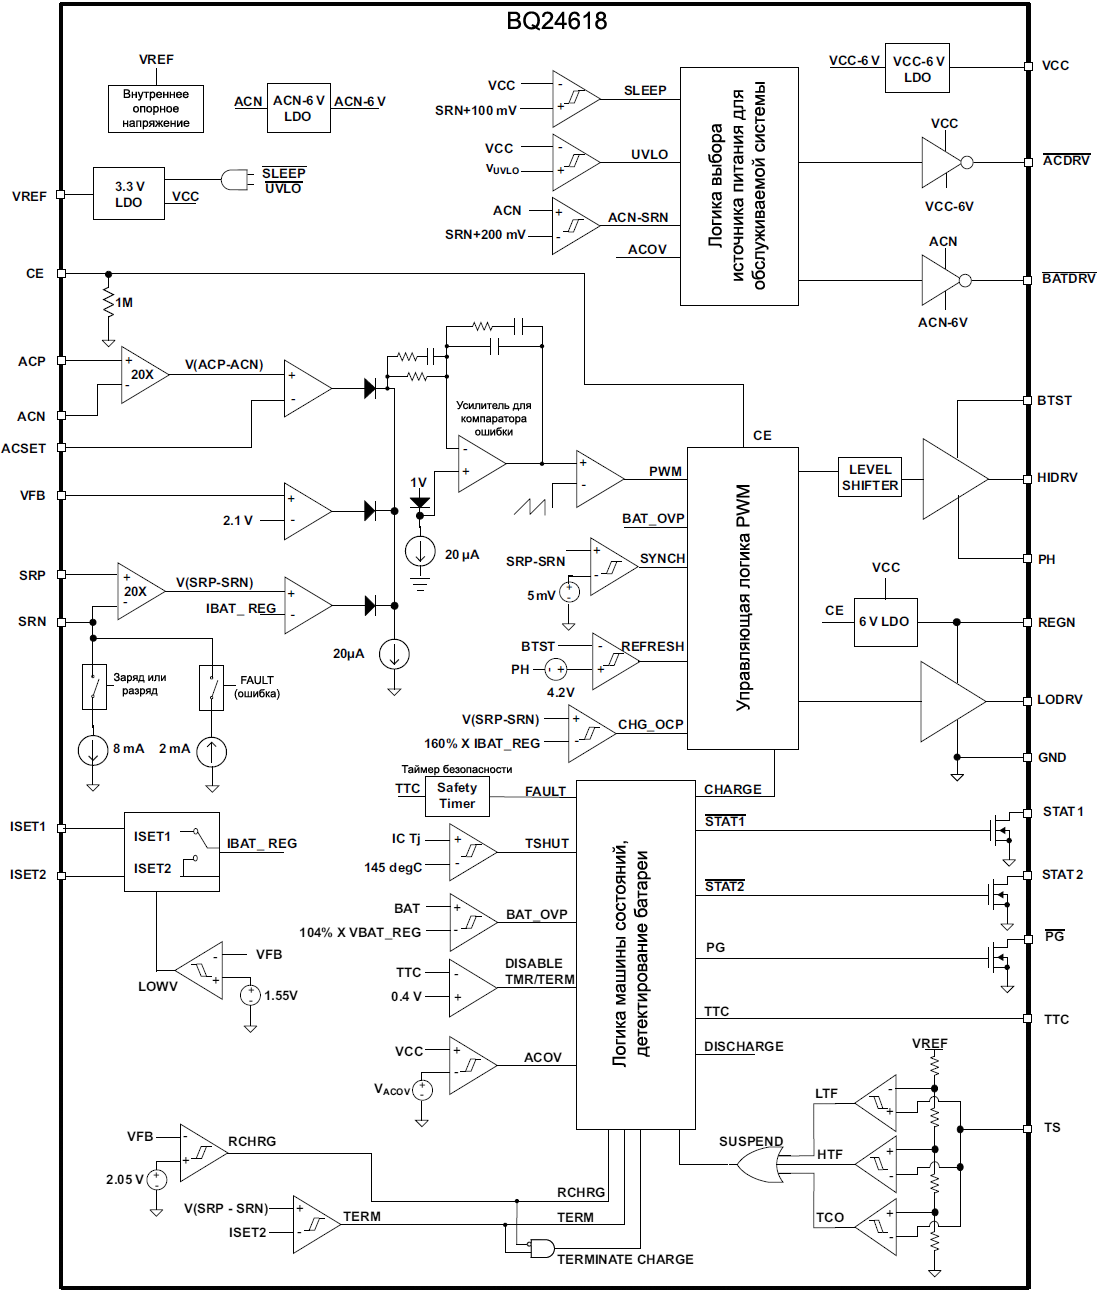 BQ24618 Functional Block Diagram